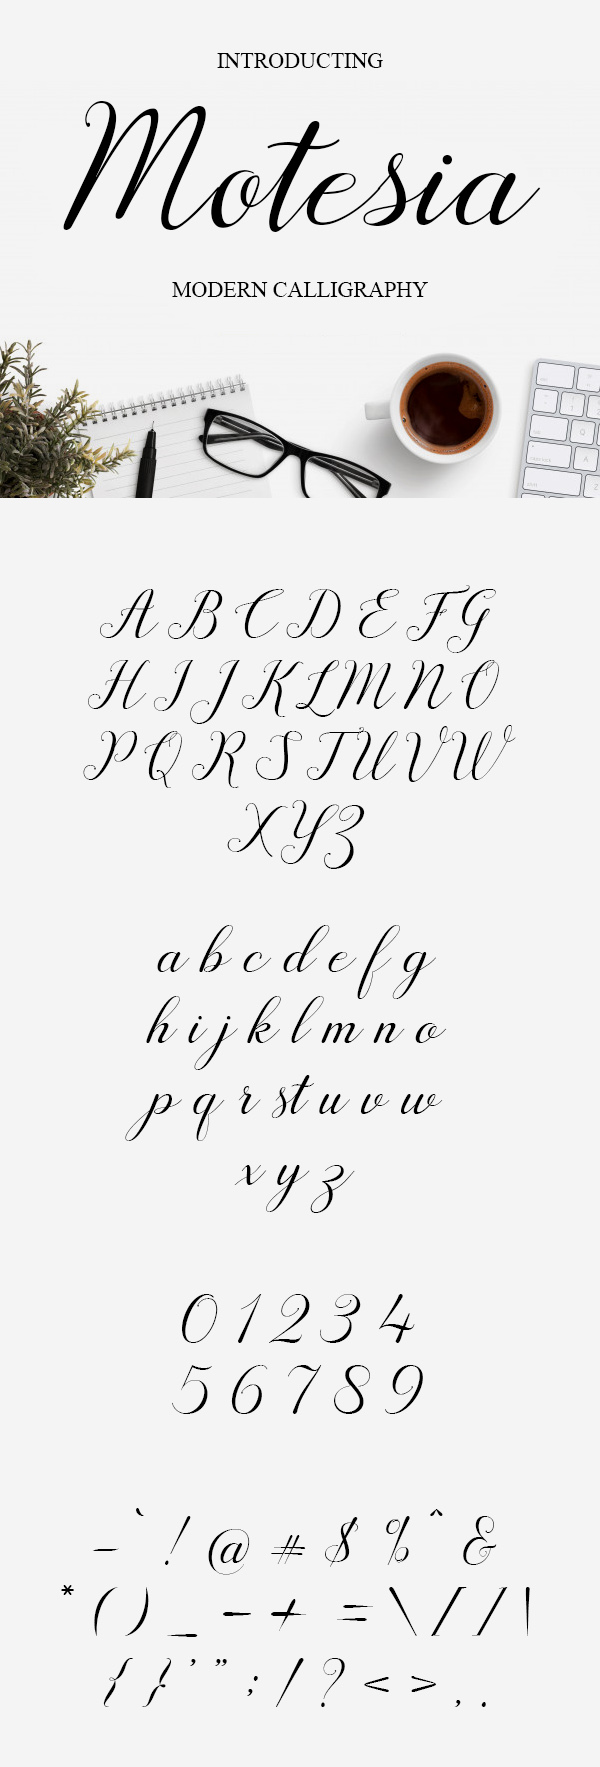 100 Greatest Free Fonts For 2021 - 14